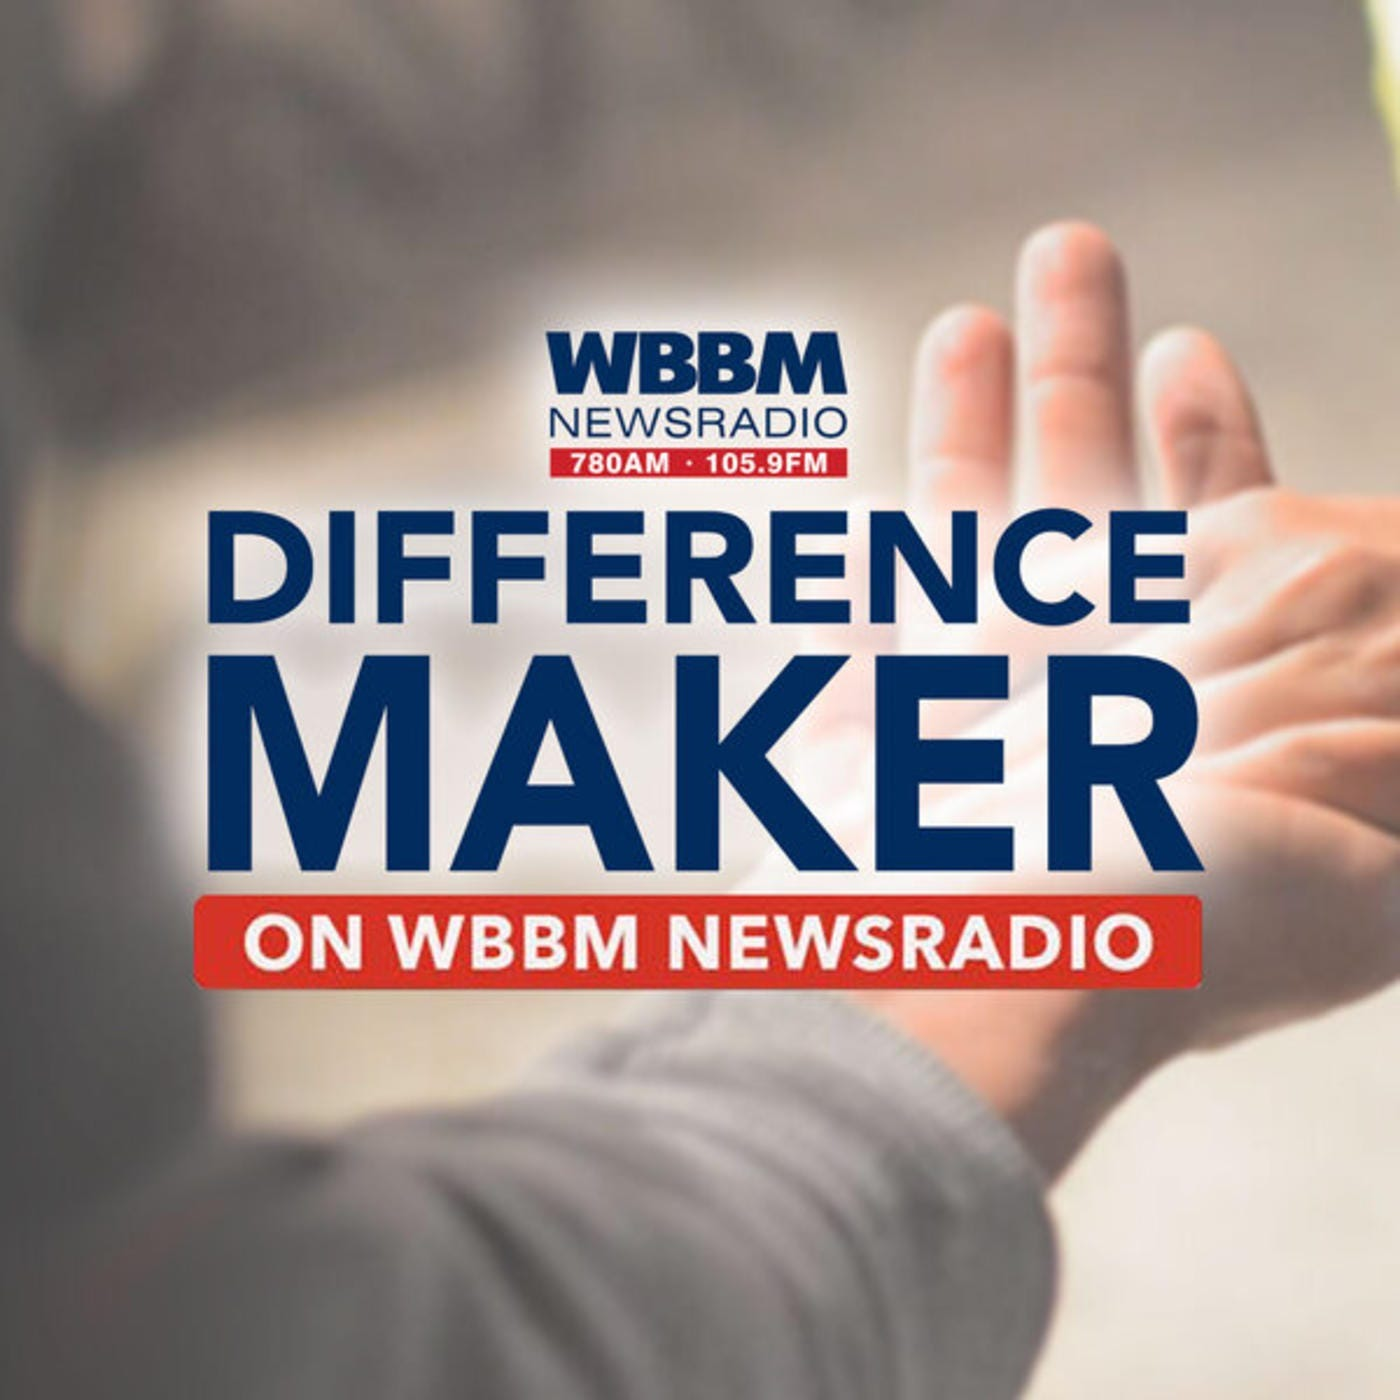 WBBM Difference Maker